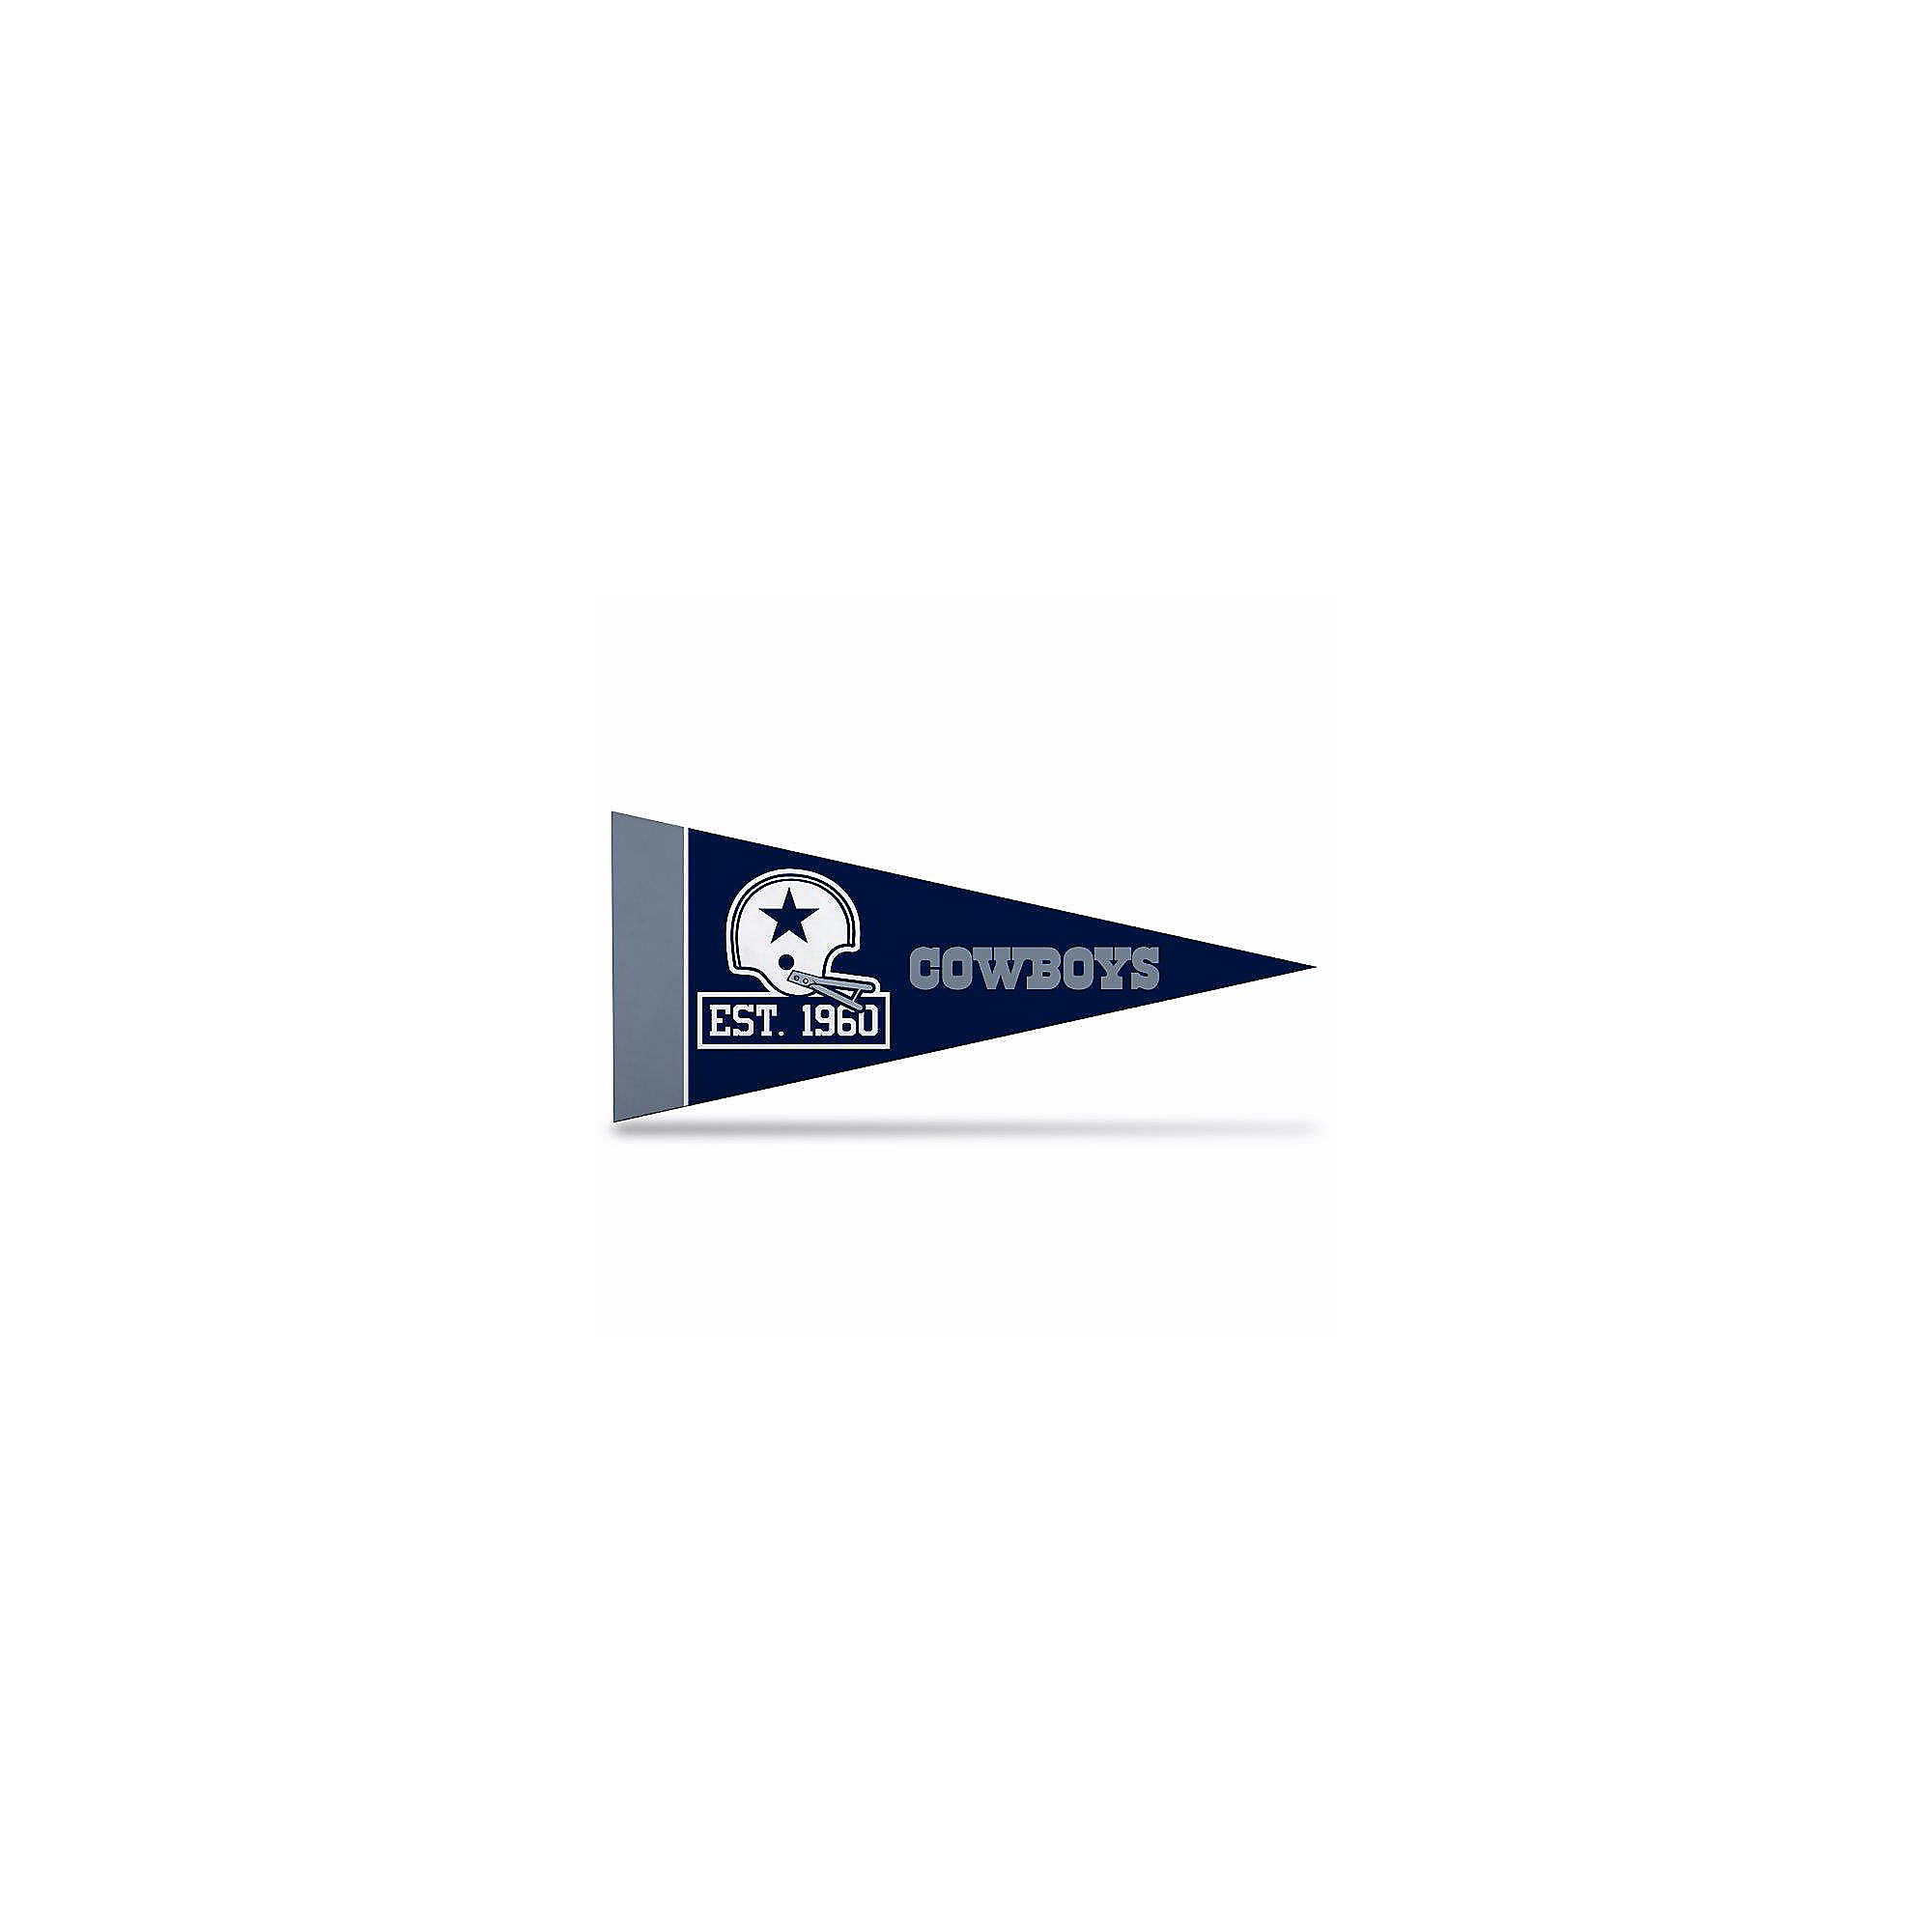 Dallas Cowboys 1960 Mini Pennant